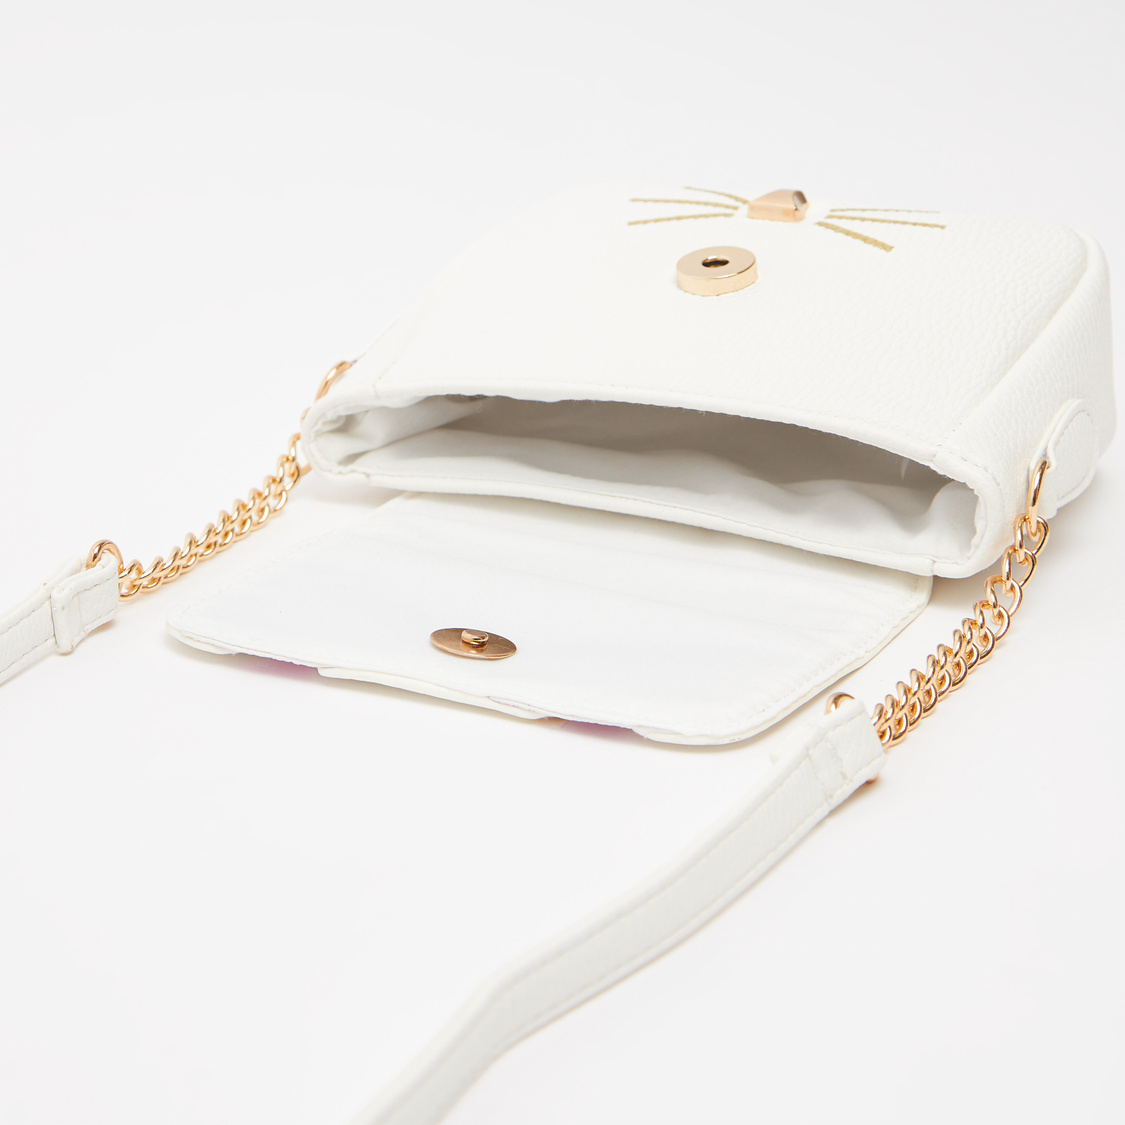 Textured Crossbody Bag with Strap and Magnetic Snap Closure